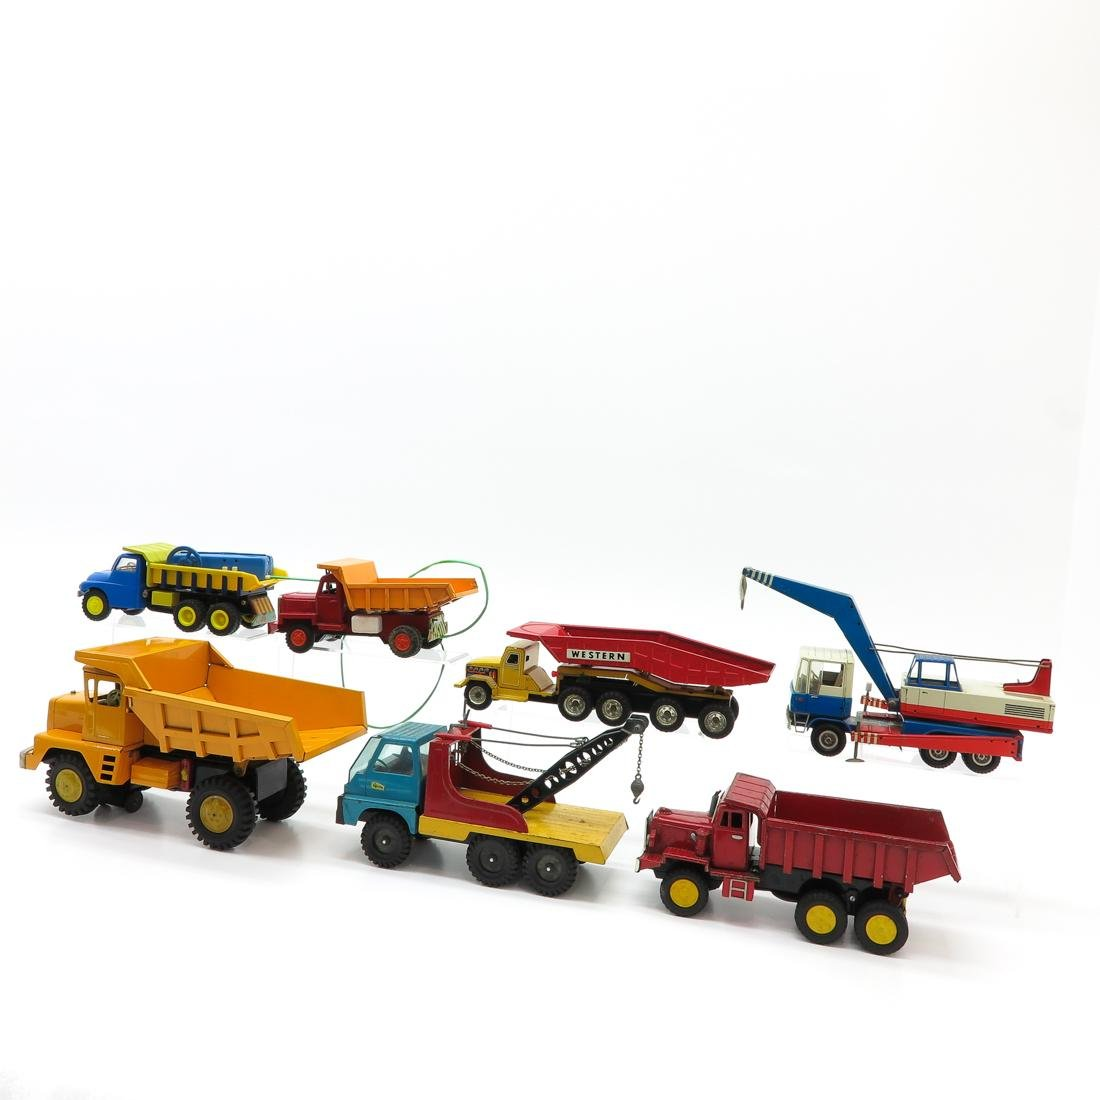 Lot of 7 Vintage Toy Trucks and Tractors - 3